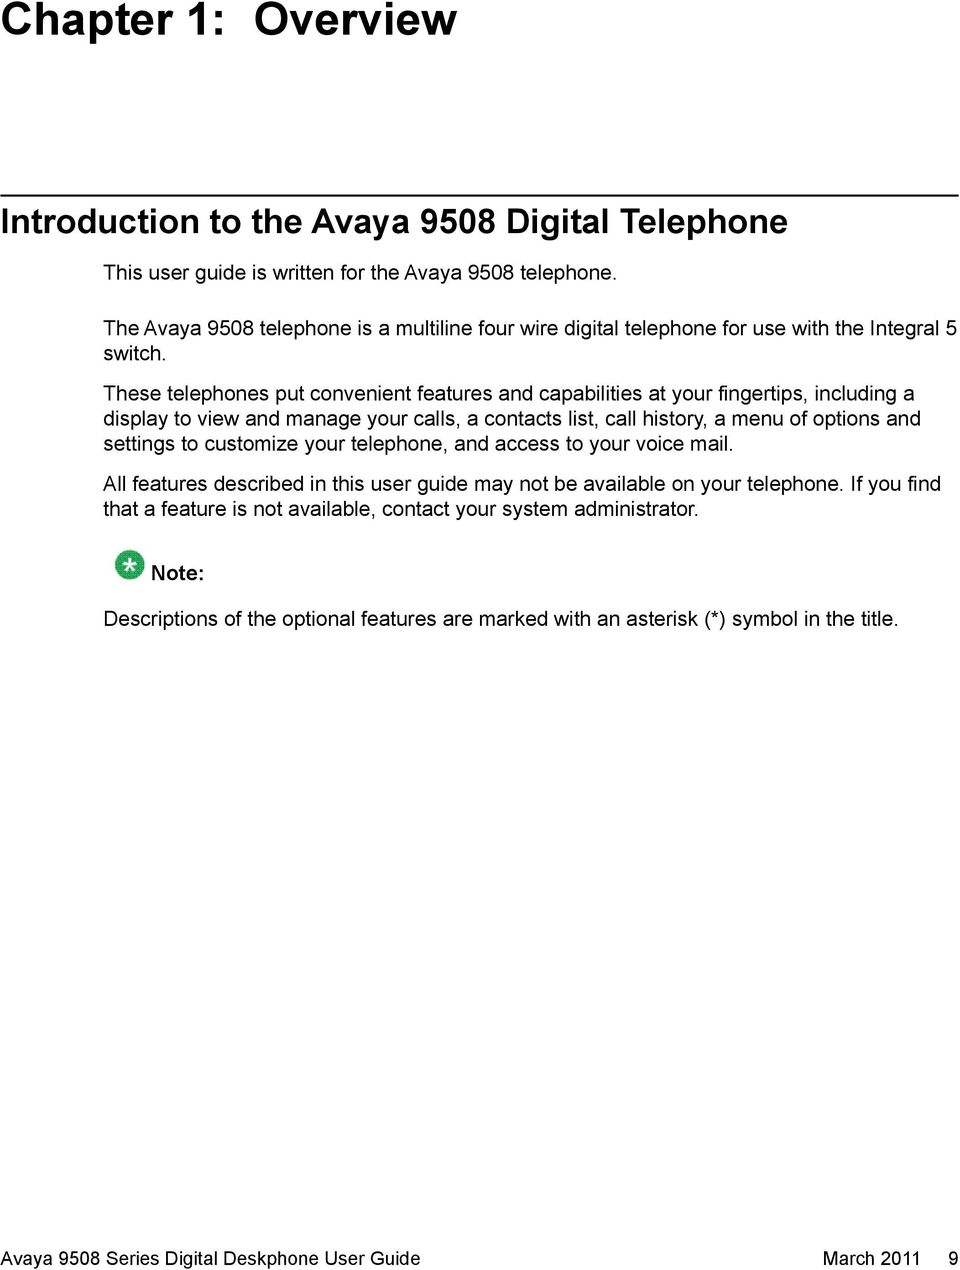 Avaya 9508 Series Digital Deskphone User Guide For Integral 5 Pdf How To Identify Ics In Your 2402 5402 Phone These Telephones Put Convenient Features And Capabilities At Fingertips Including A Display View